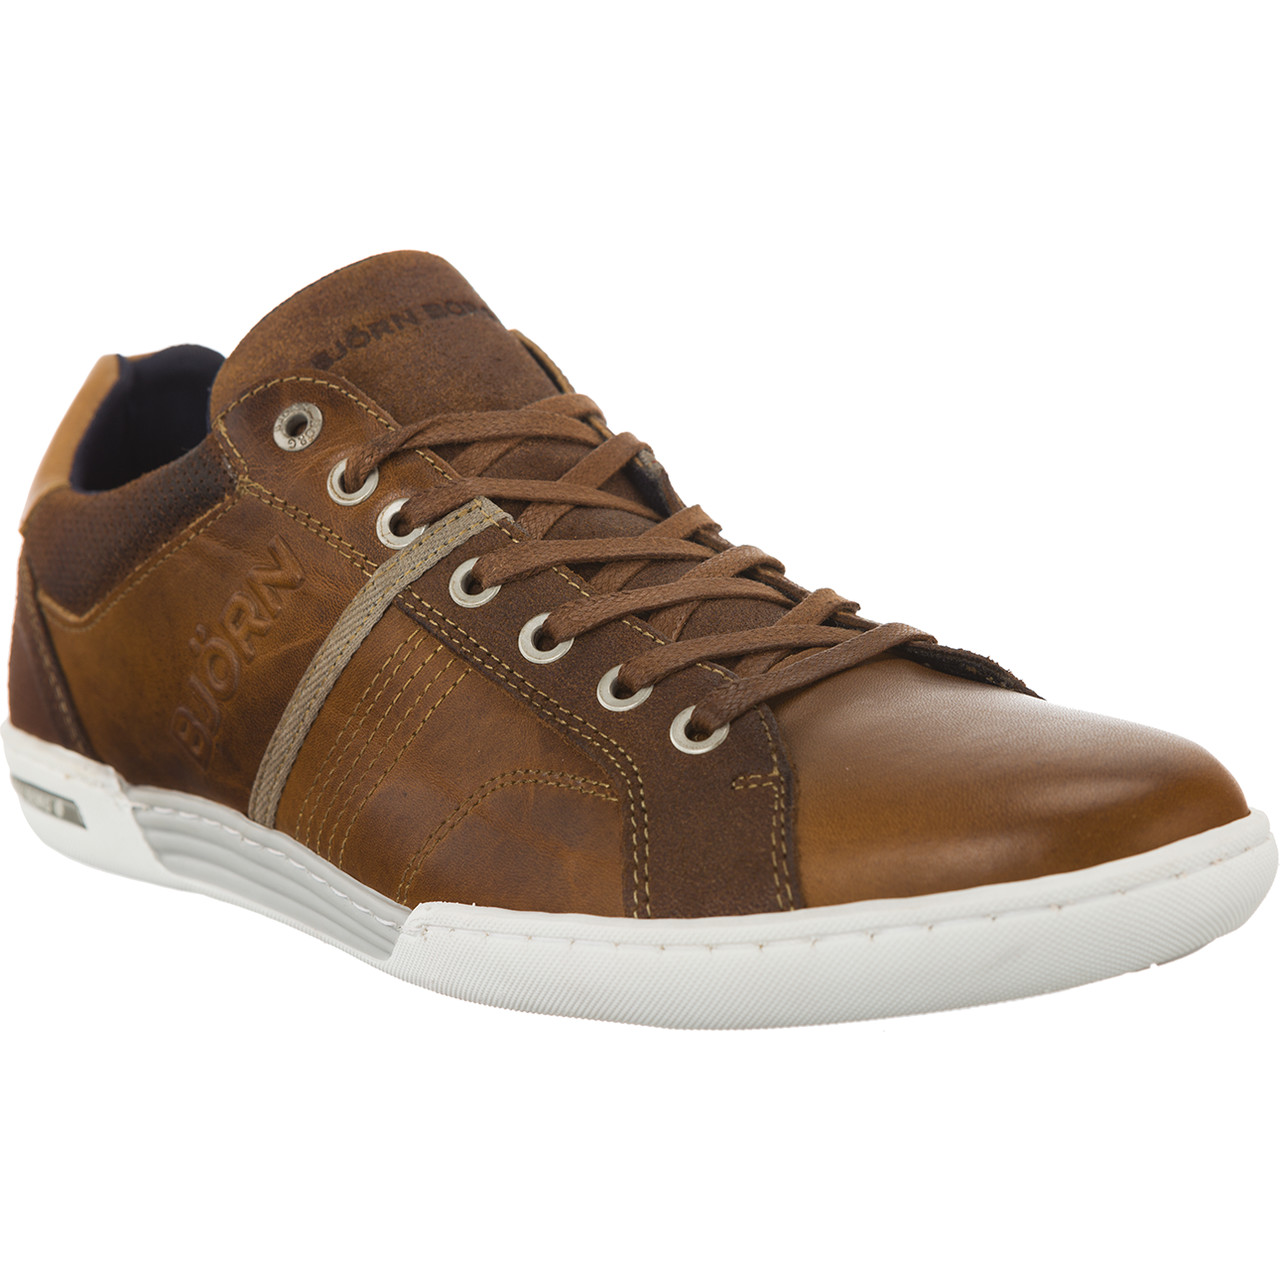 Buty Bjorn Borg  <br/><small>ROSCOE 2102 TAN-LIGHT GREY </small>  1 642 048 538